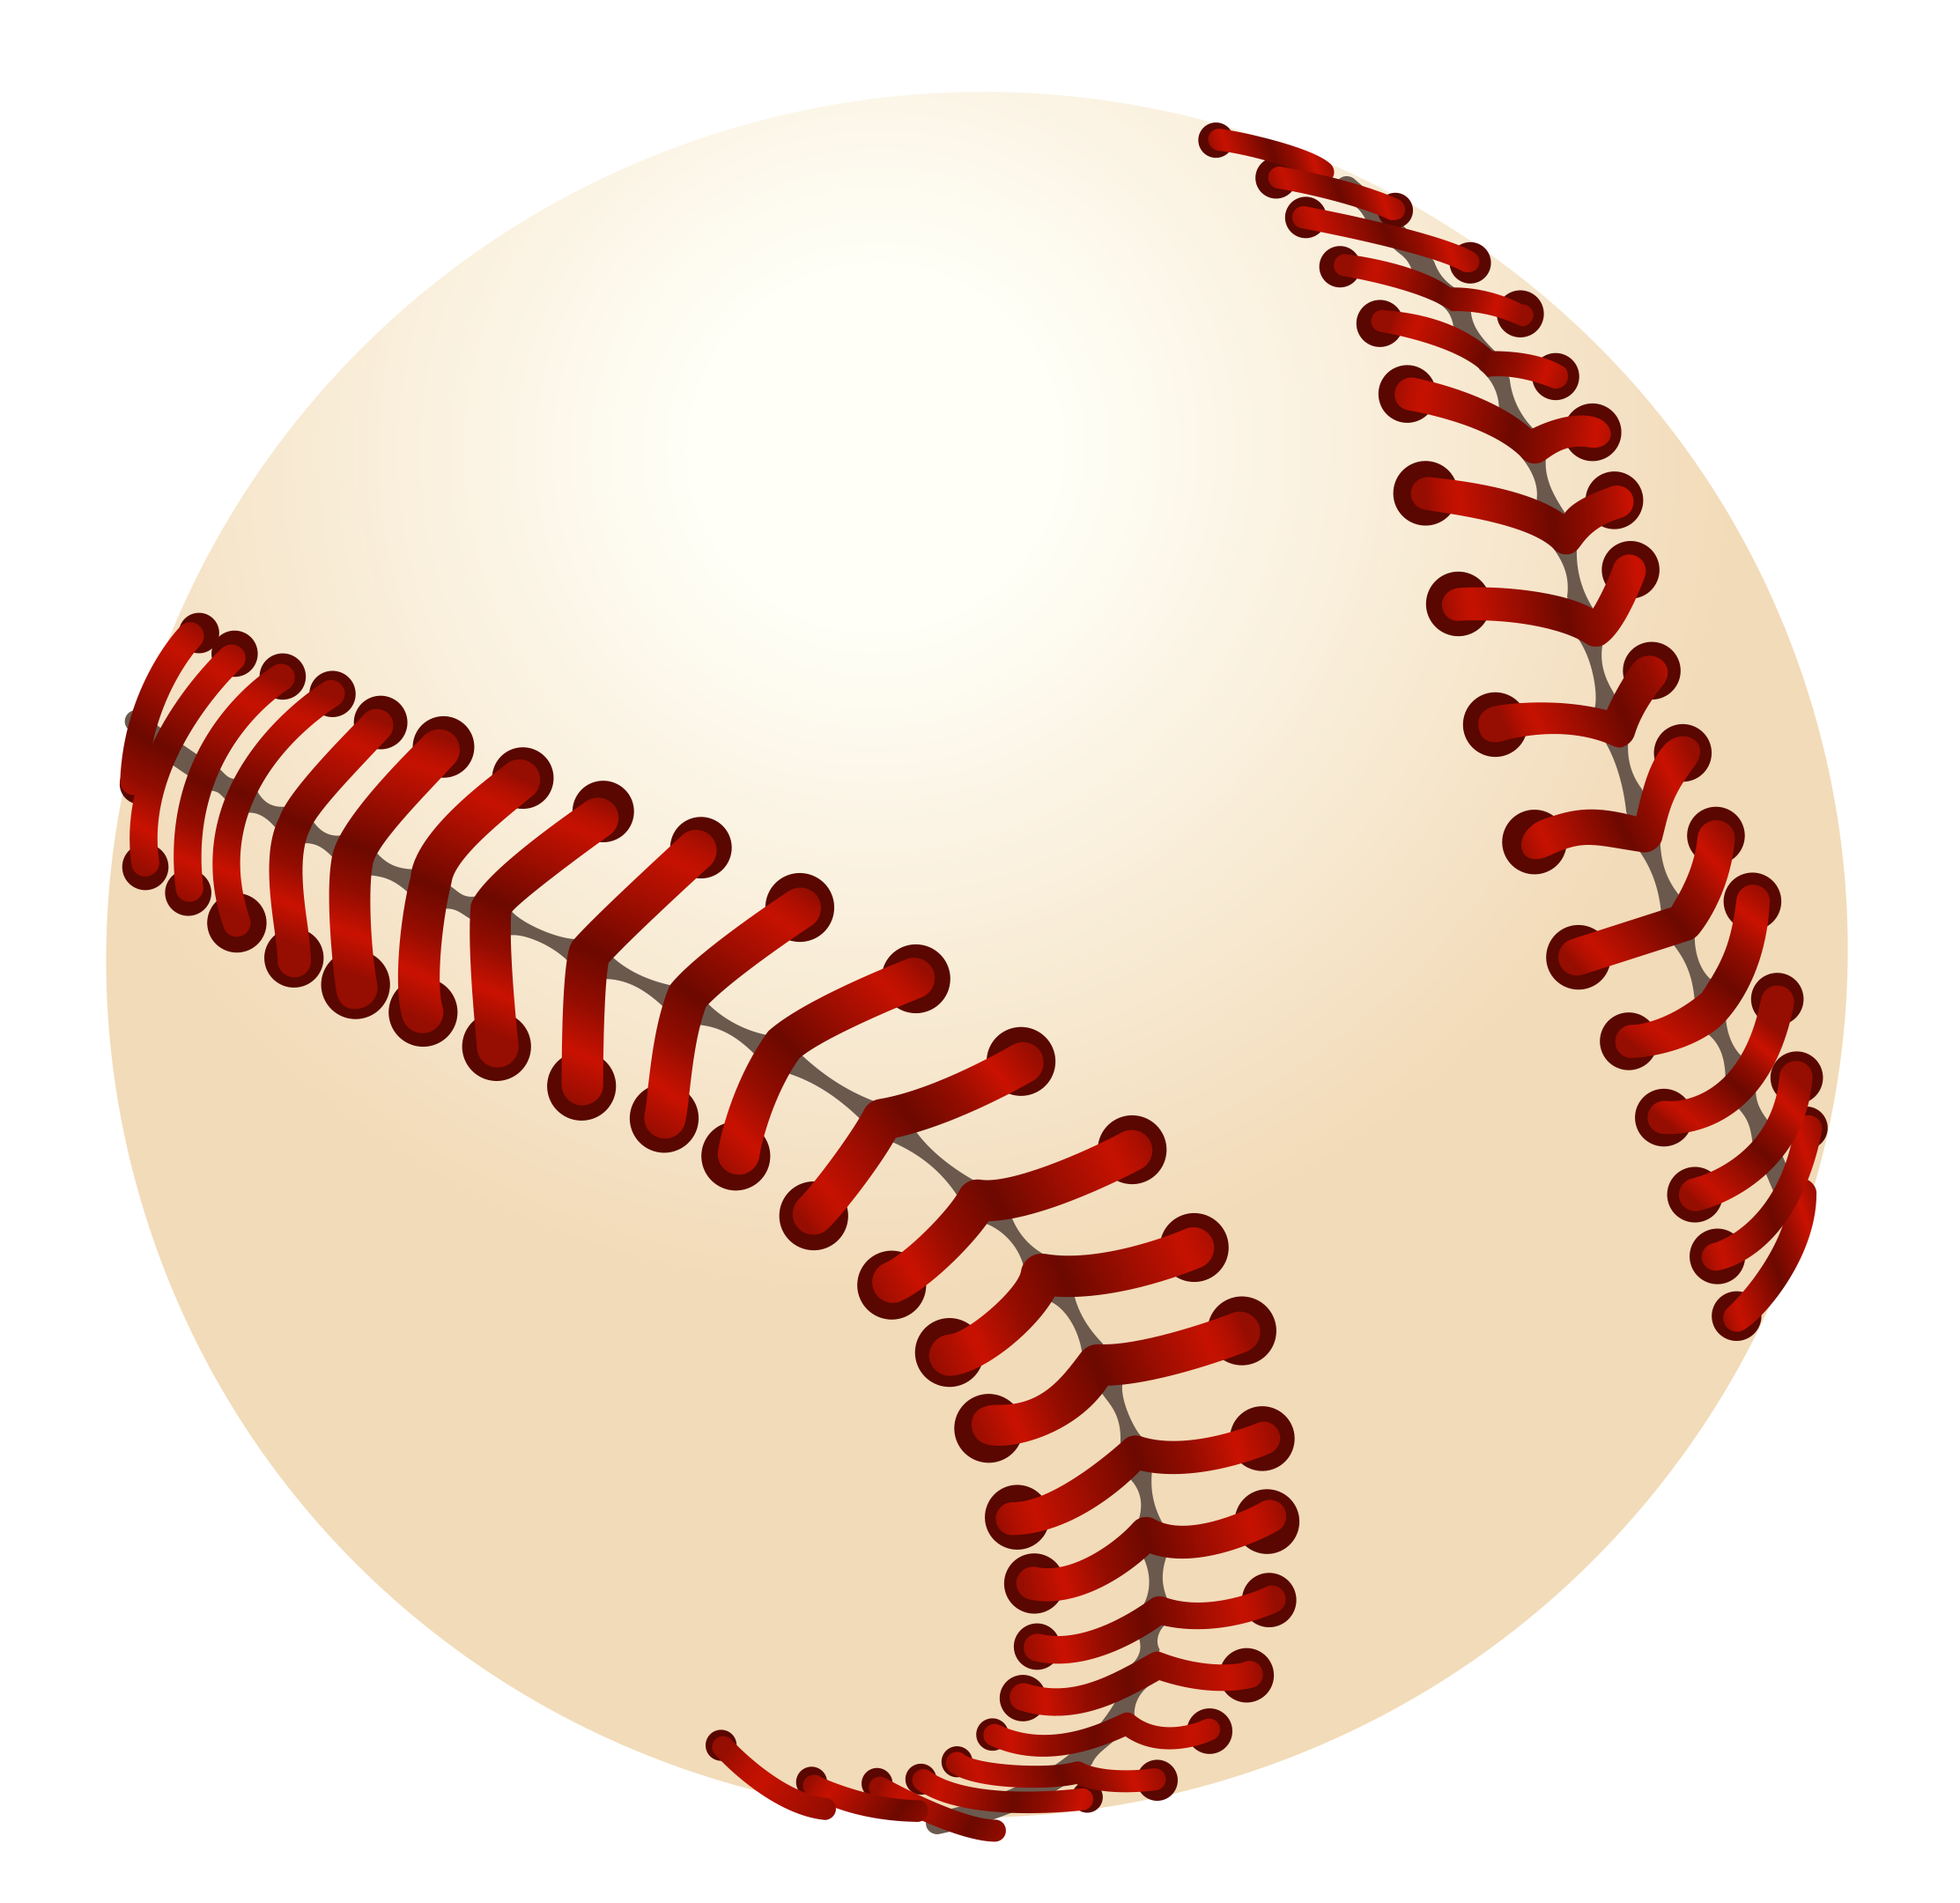 2225x2160 Collection Of Baseball Clipart High Quality, Free Cliparts